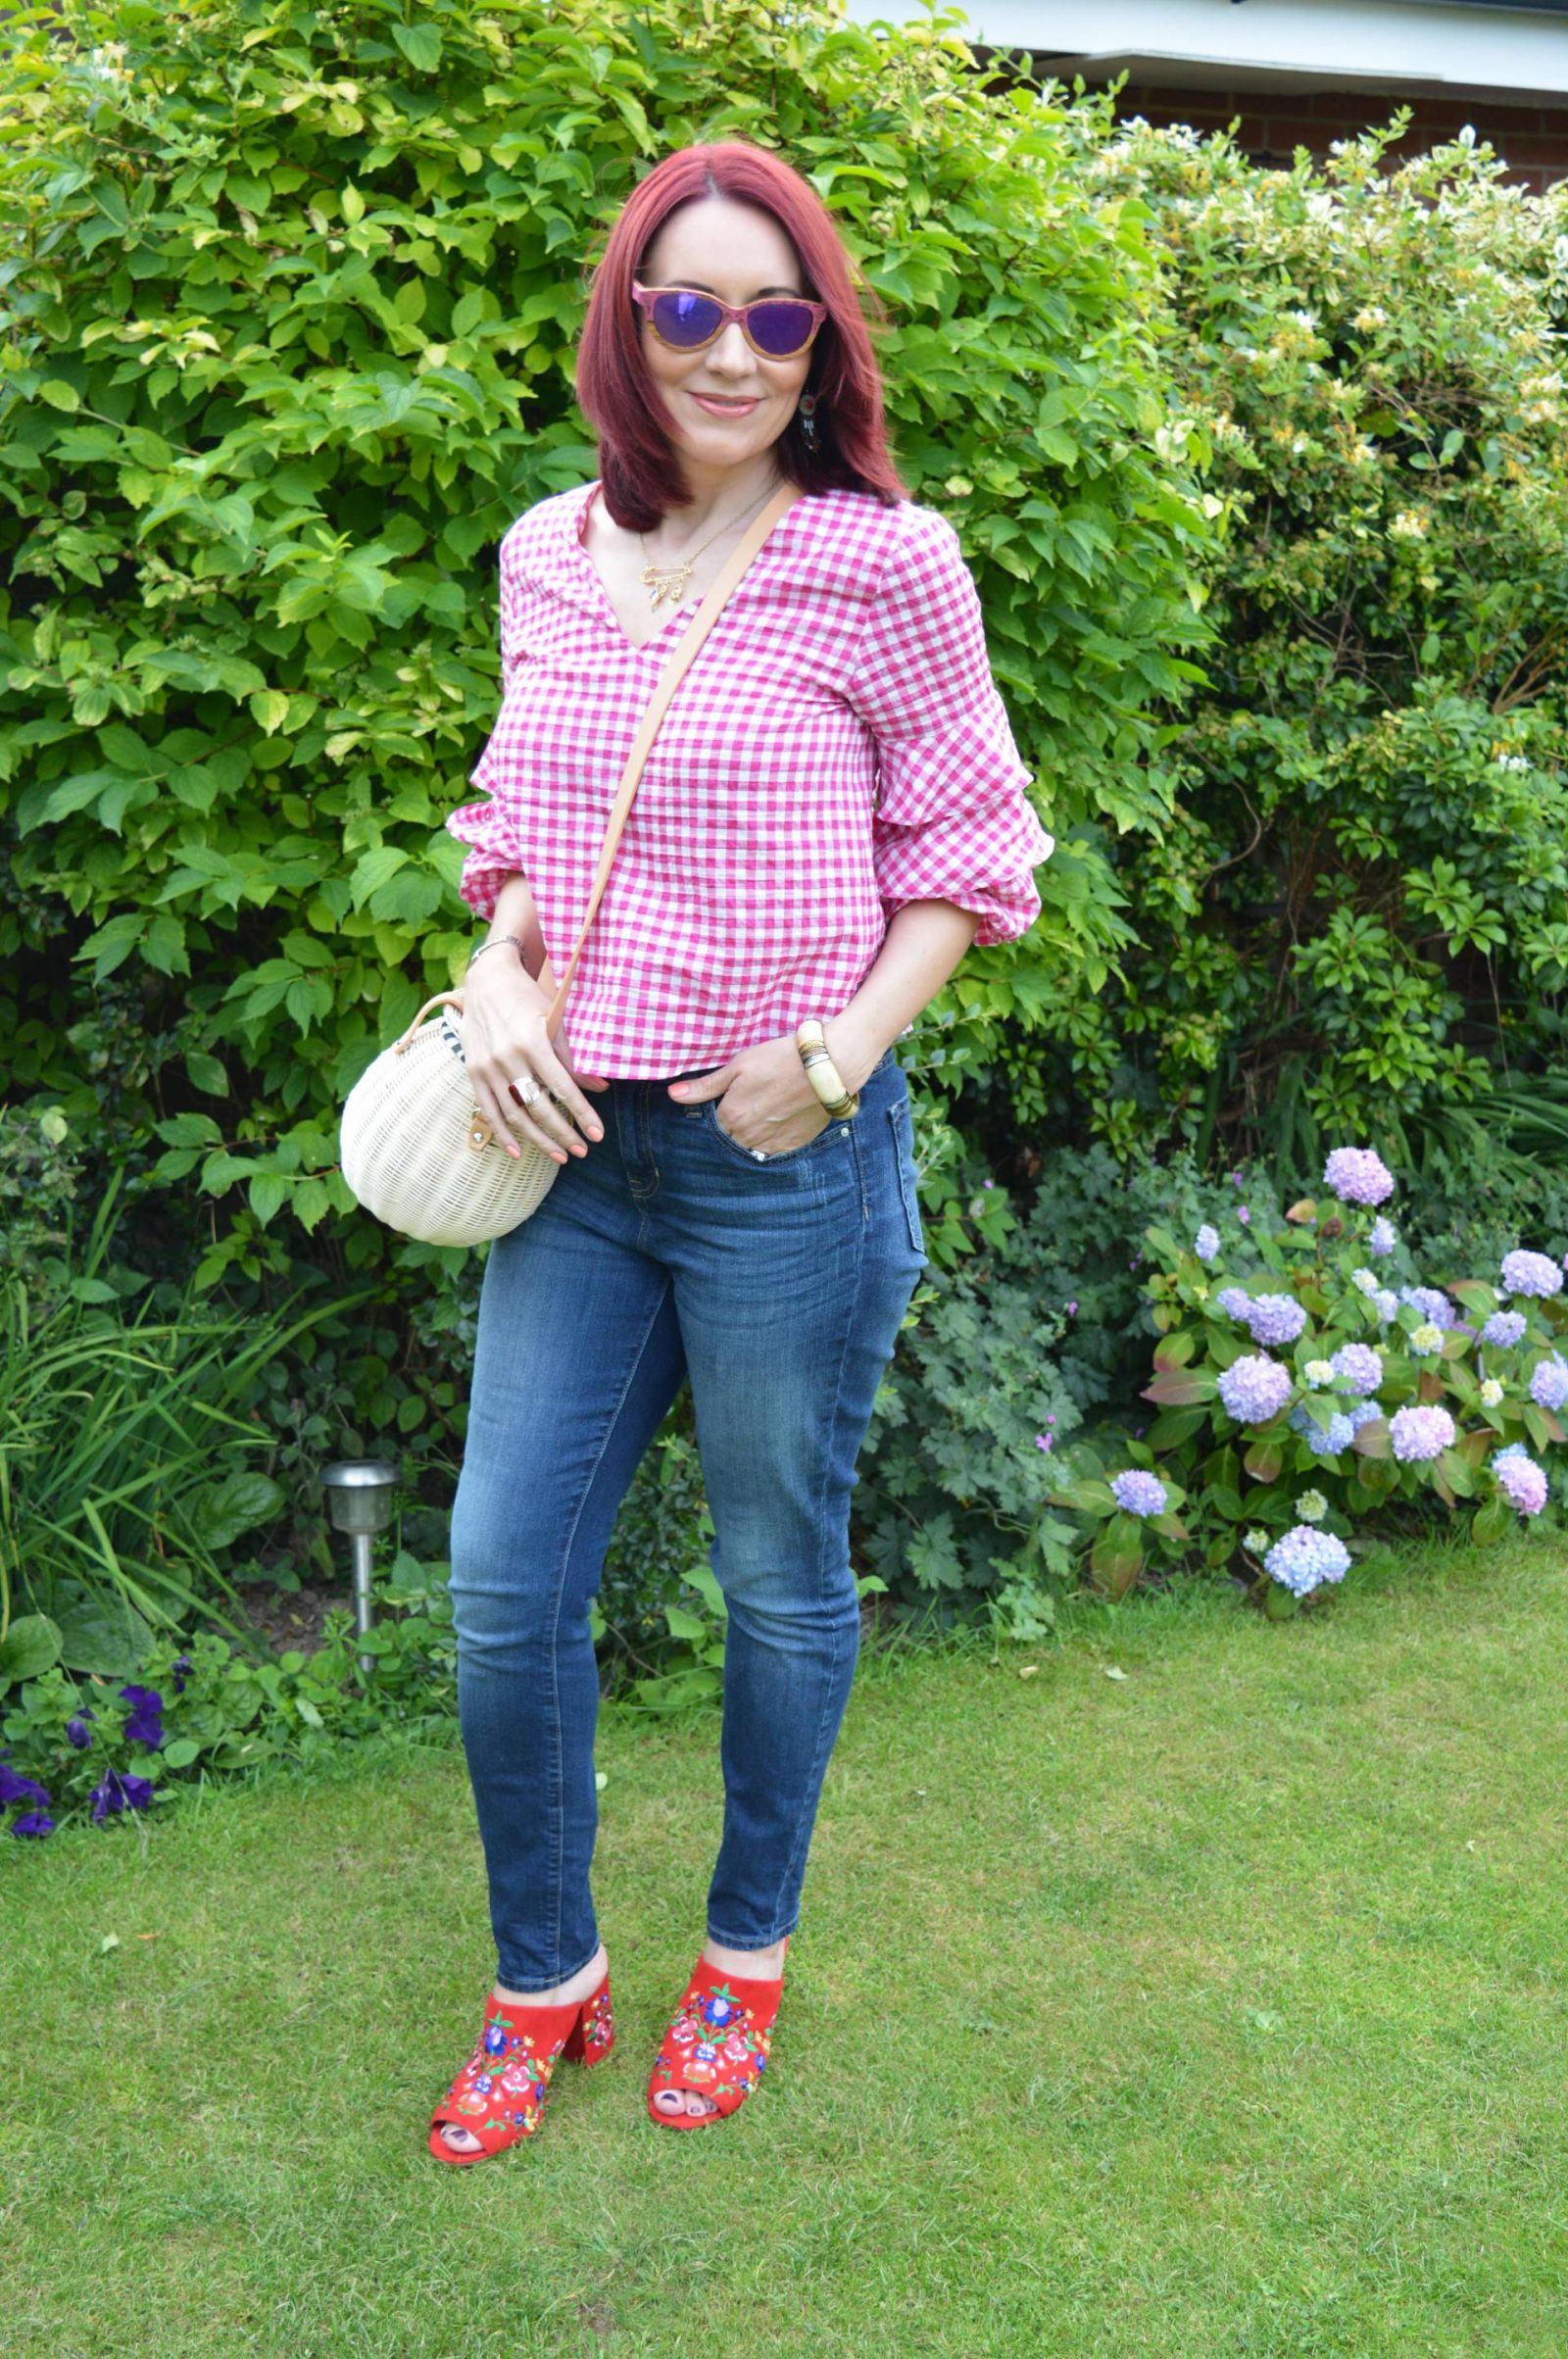 Gingham Ruffles, Denim and Embroidered Shoes Zara gingham top Marks and Spencer embroidered mules Zara basket bag